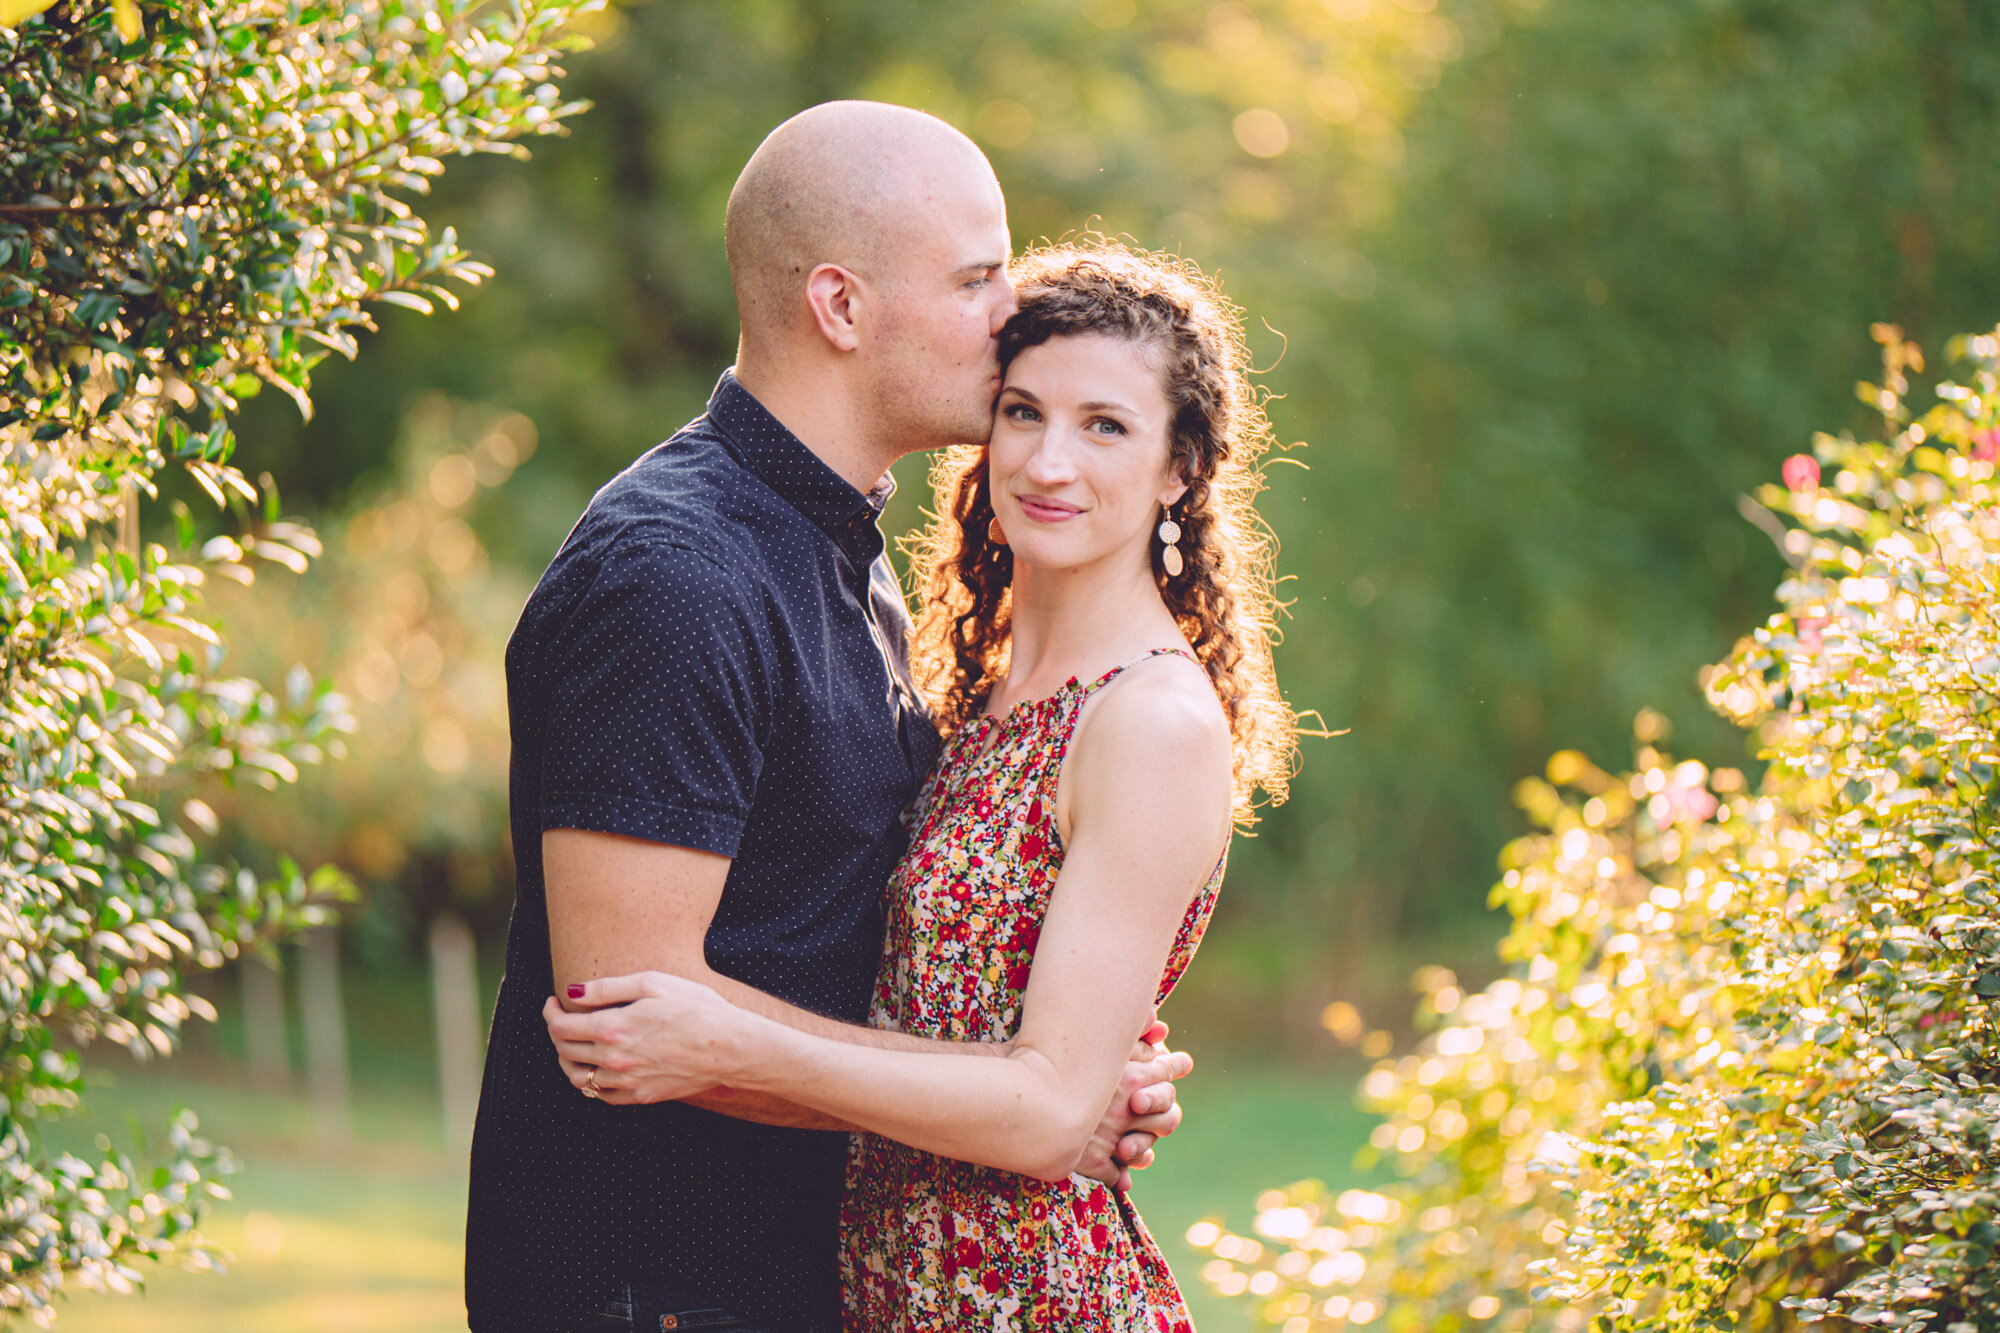 Bon Air Park Rose Garden Engagement Photos-7.jpg